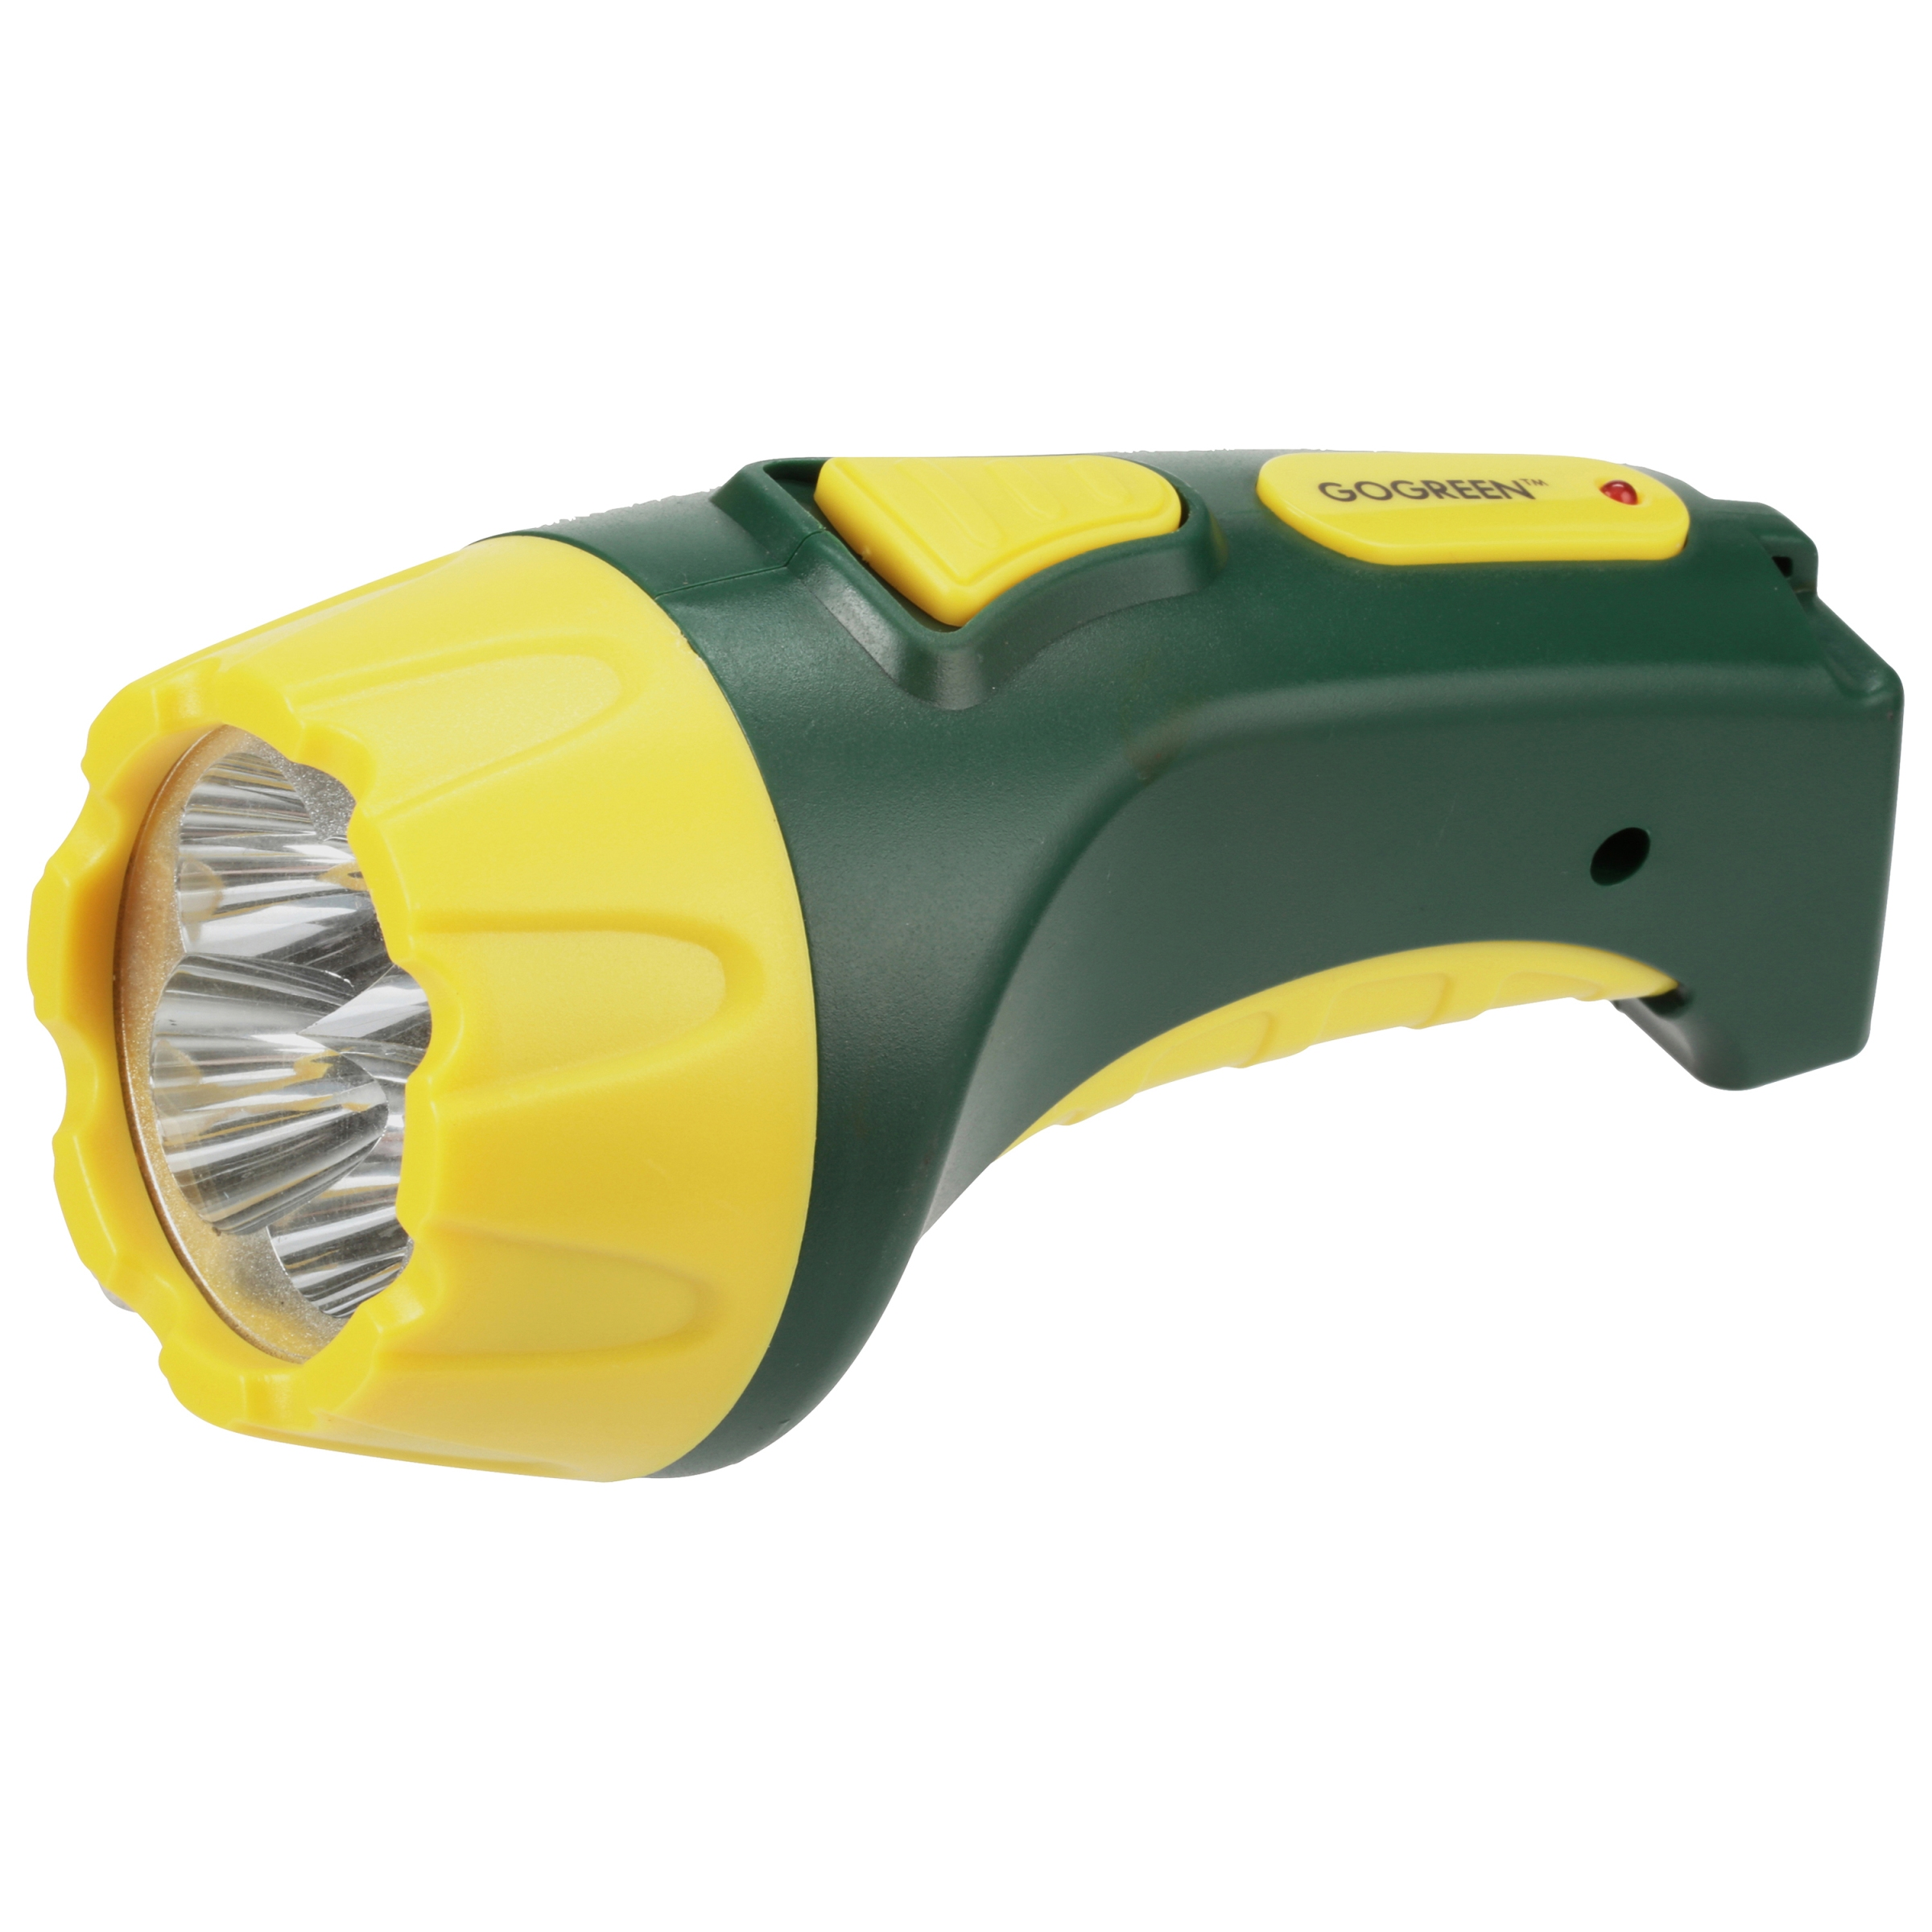 Go Green™ Rechargeable Flashlight